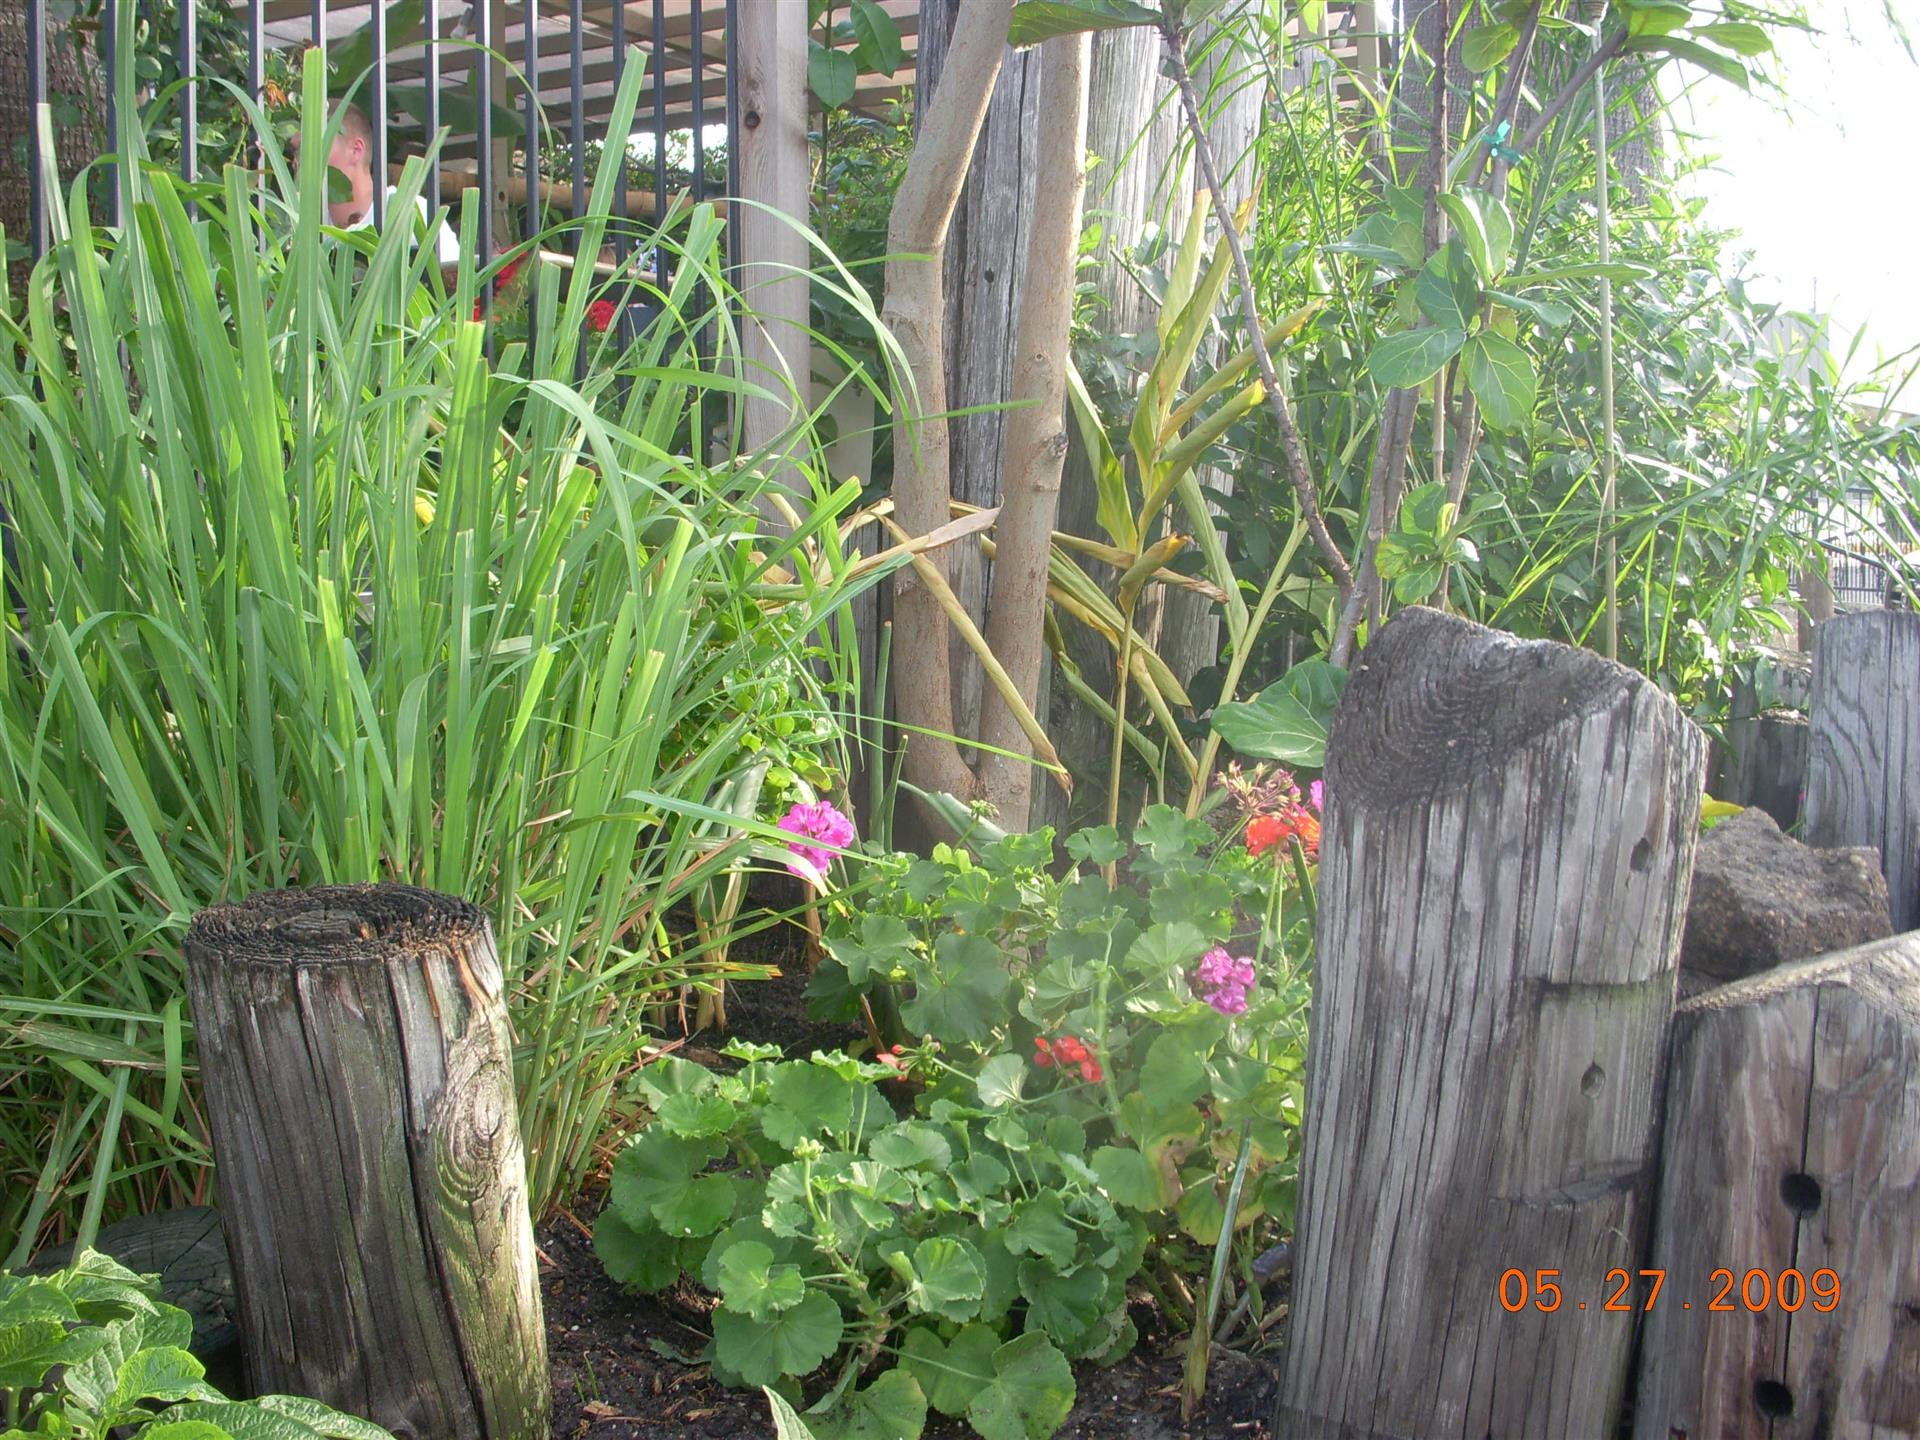 Garden filled with flowers and tree stumps